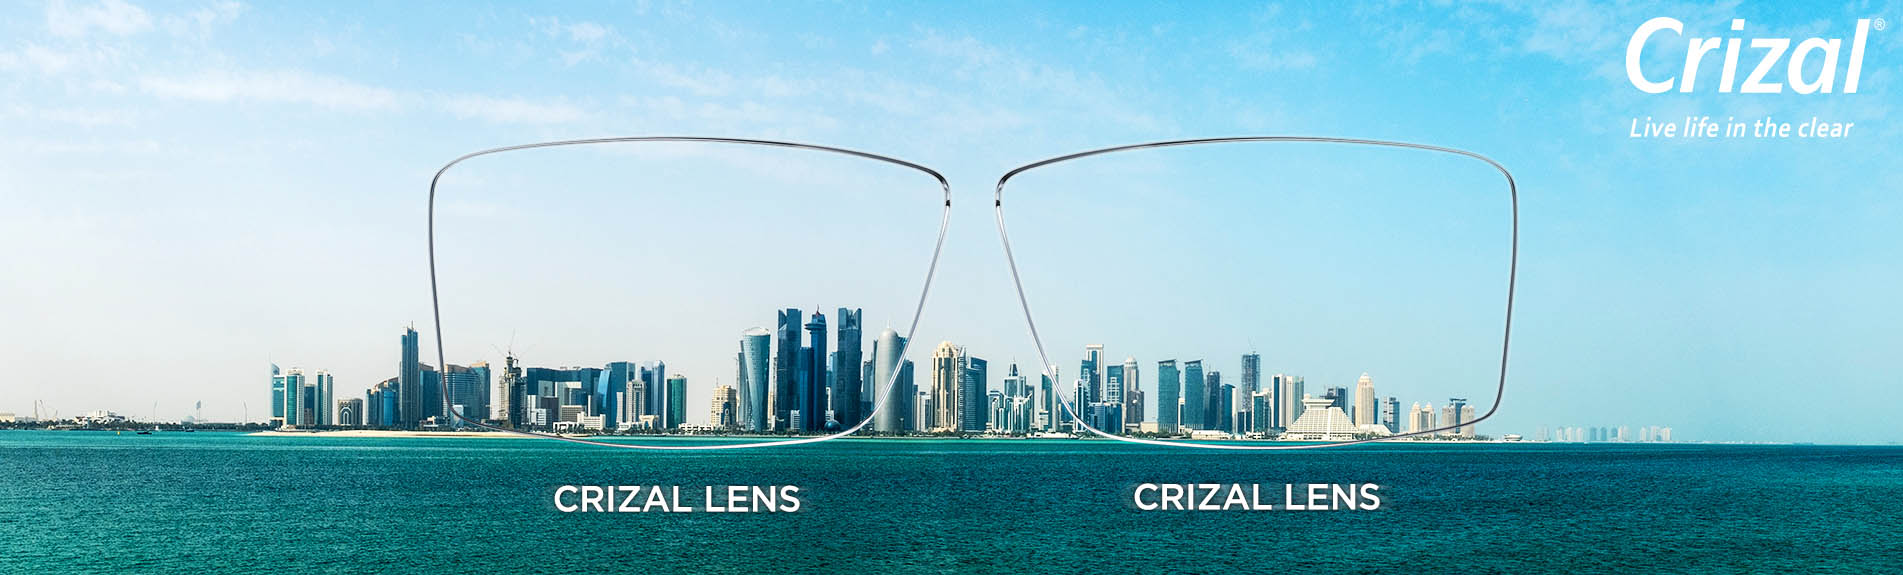 With Crizal Lenses